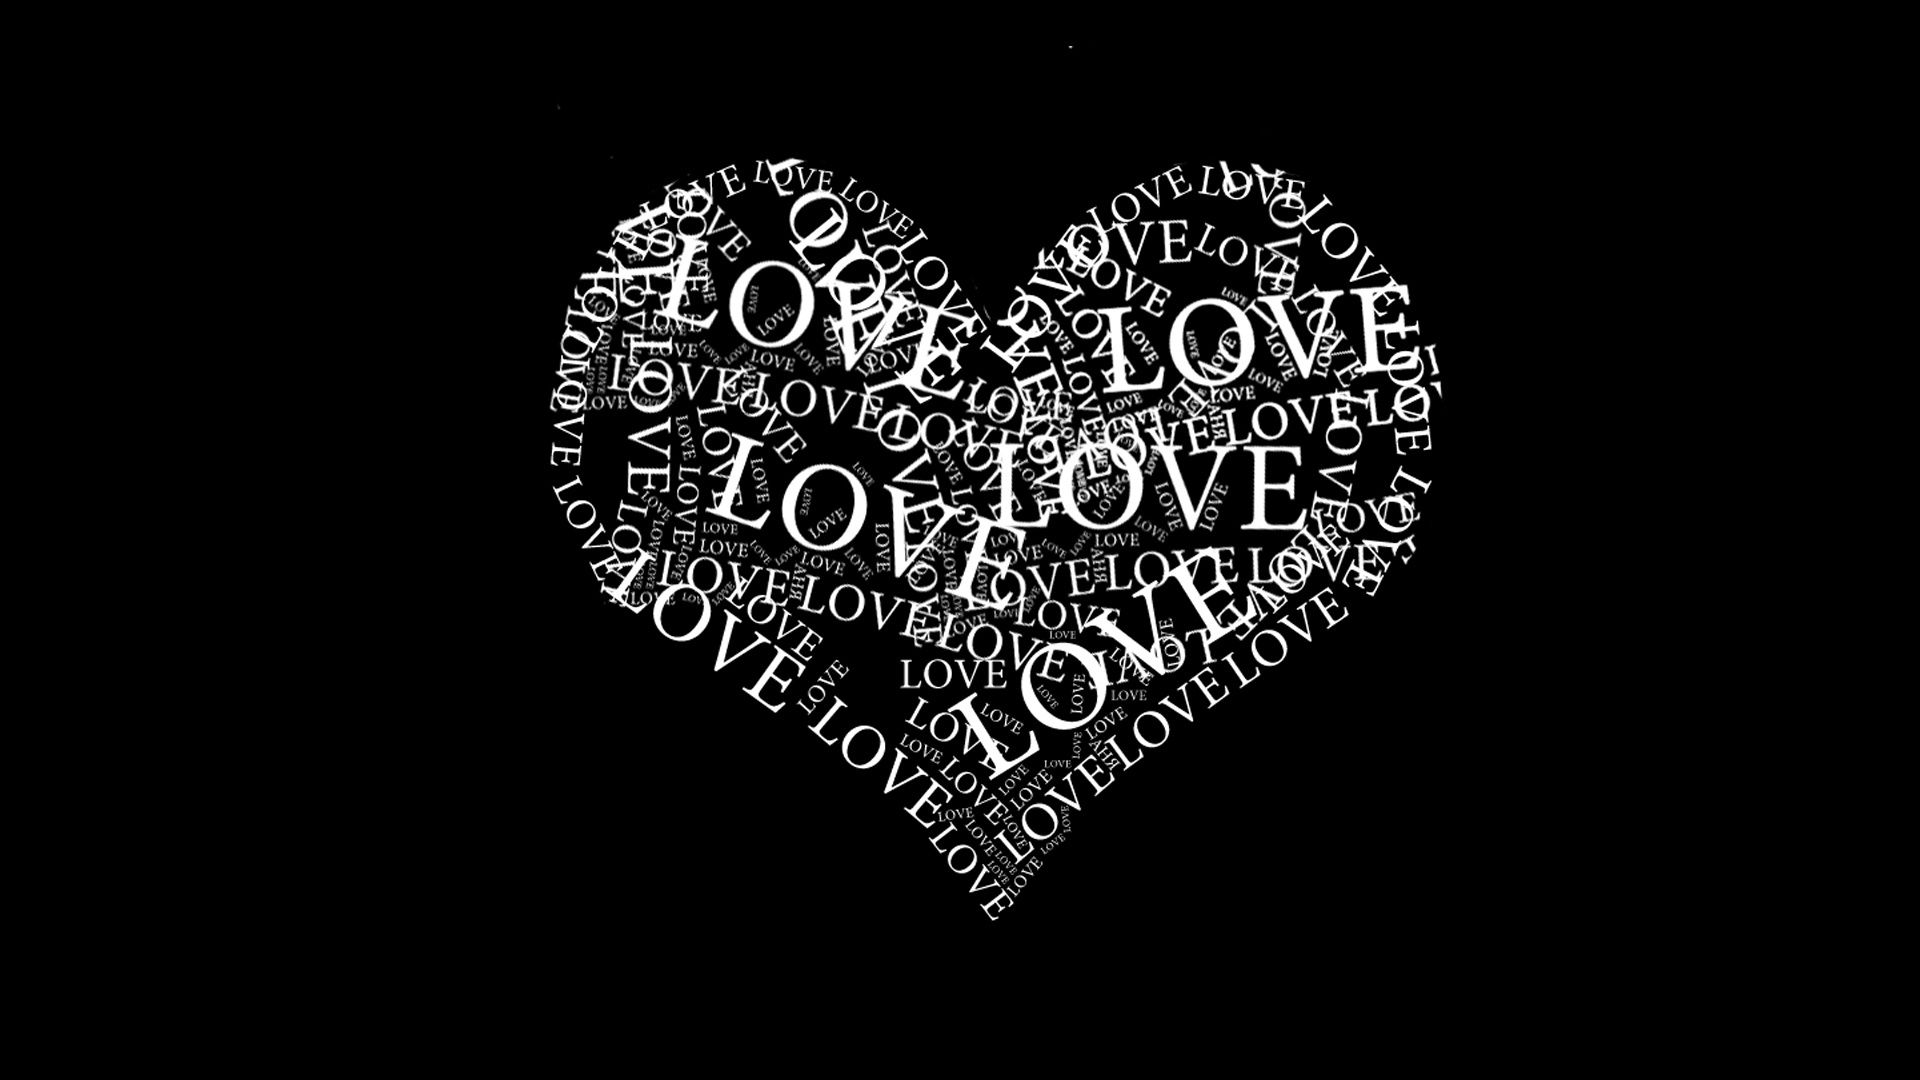 Wallpapers For > Cute Black And White Love Backgrounds